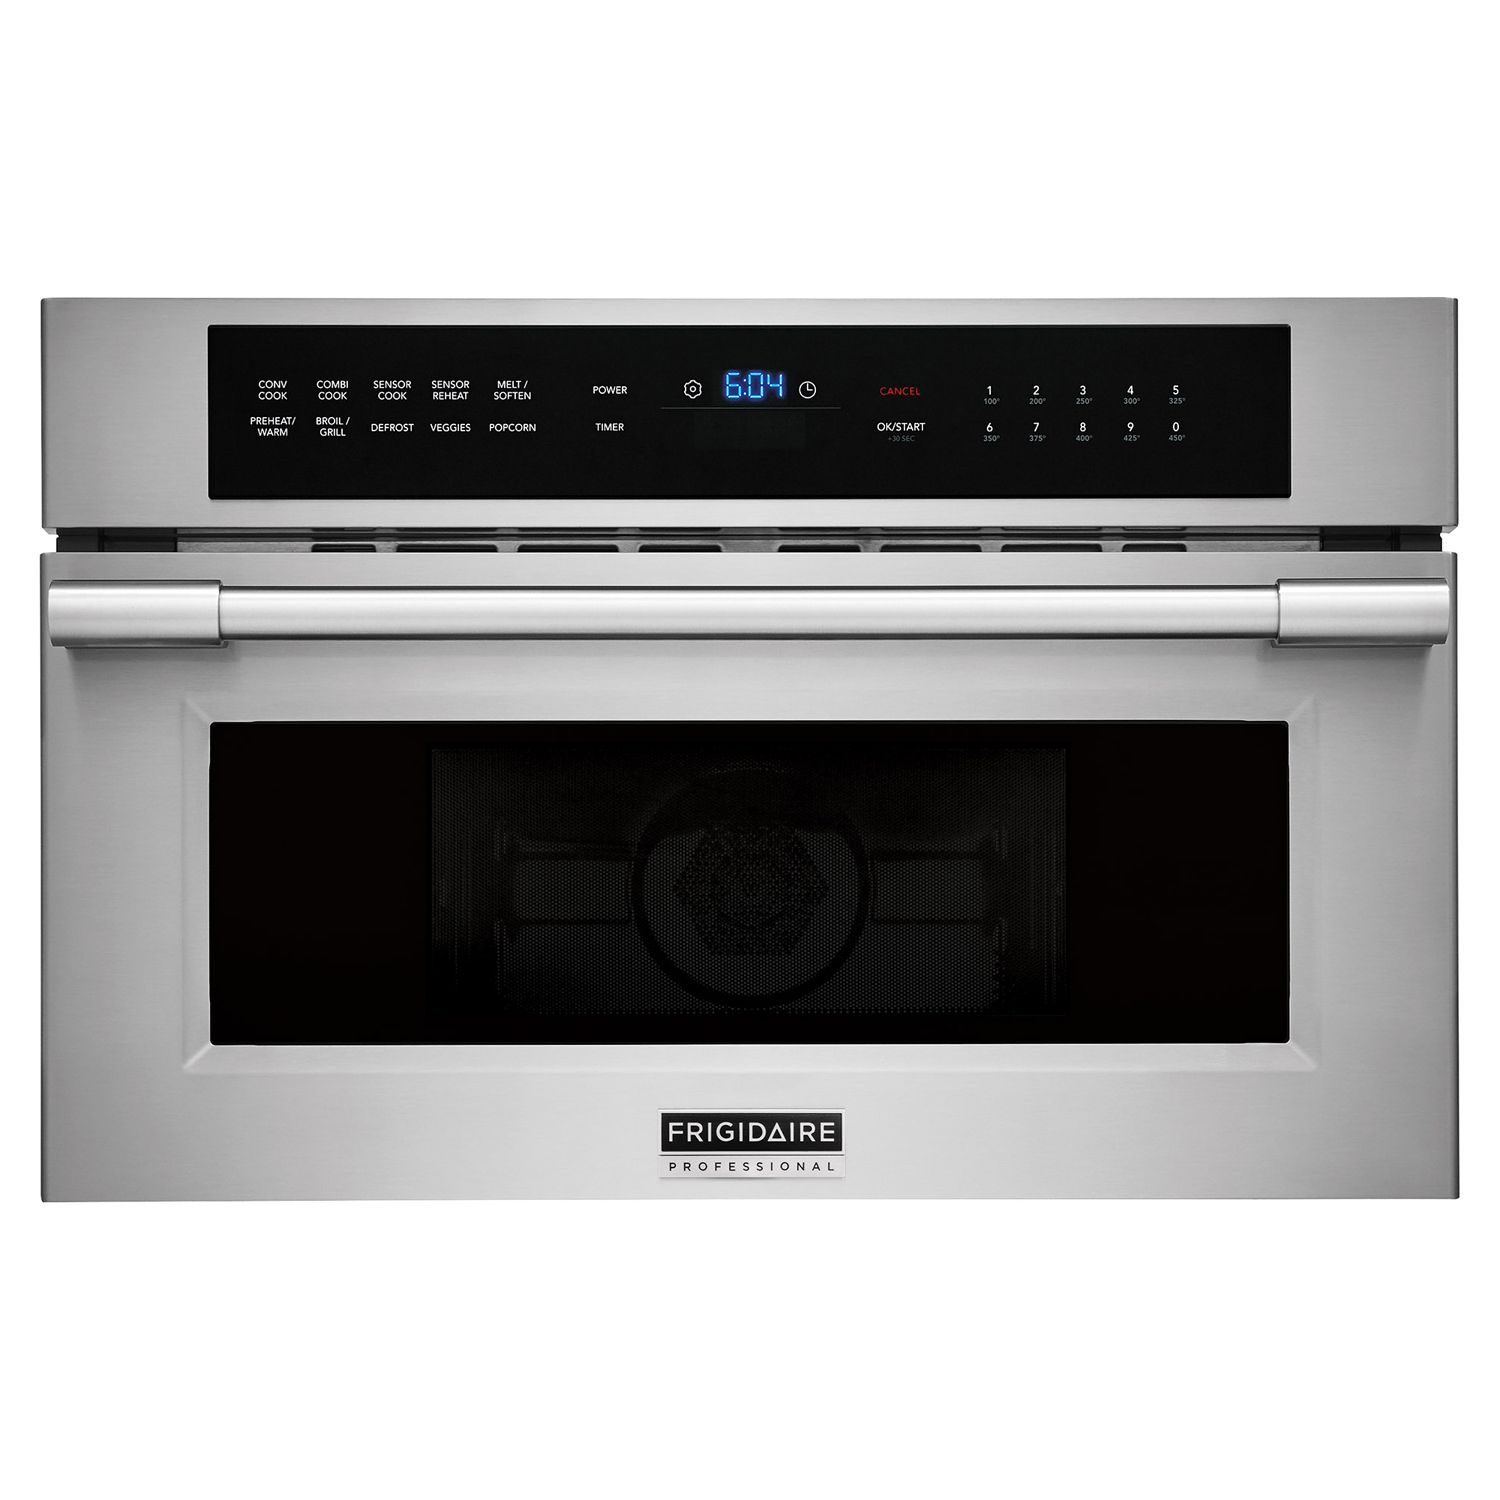 """Convection Microwave Oven Means: Frigidaire Professional 30"""" Convection Microwave Oven"""